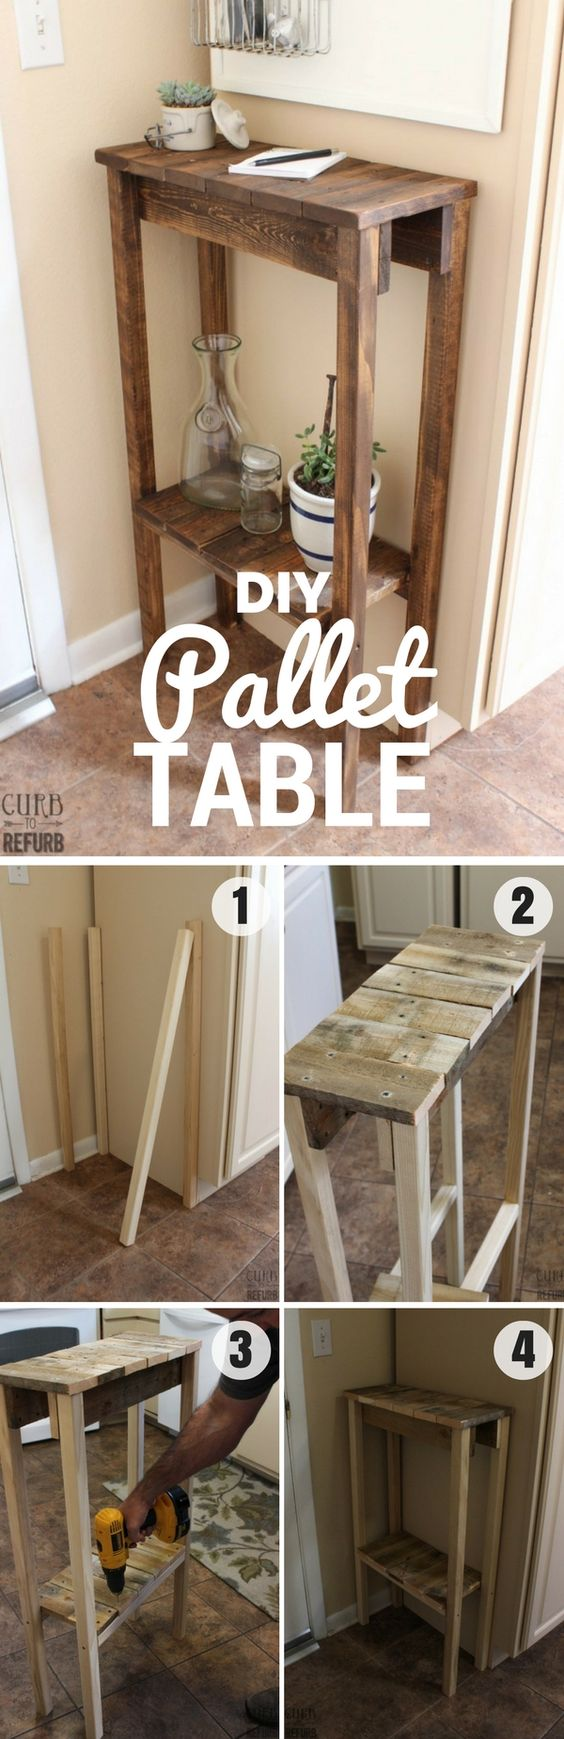 15 Amazing Easy DIY Wood Craft Project Ideas for Home Decor